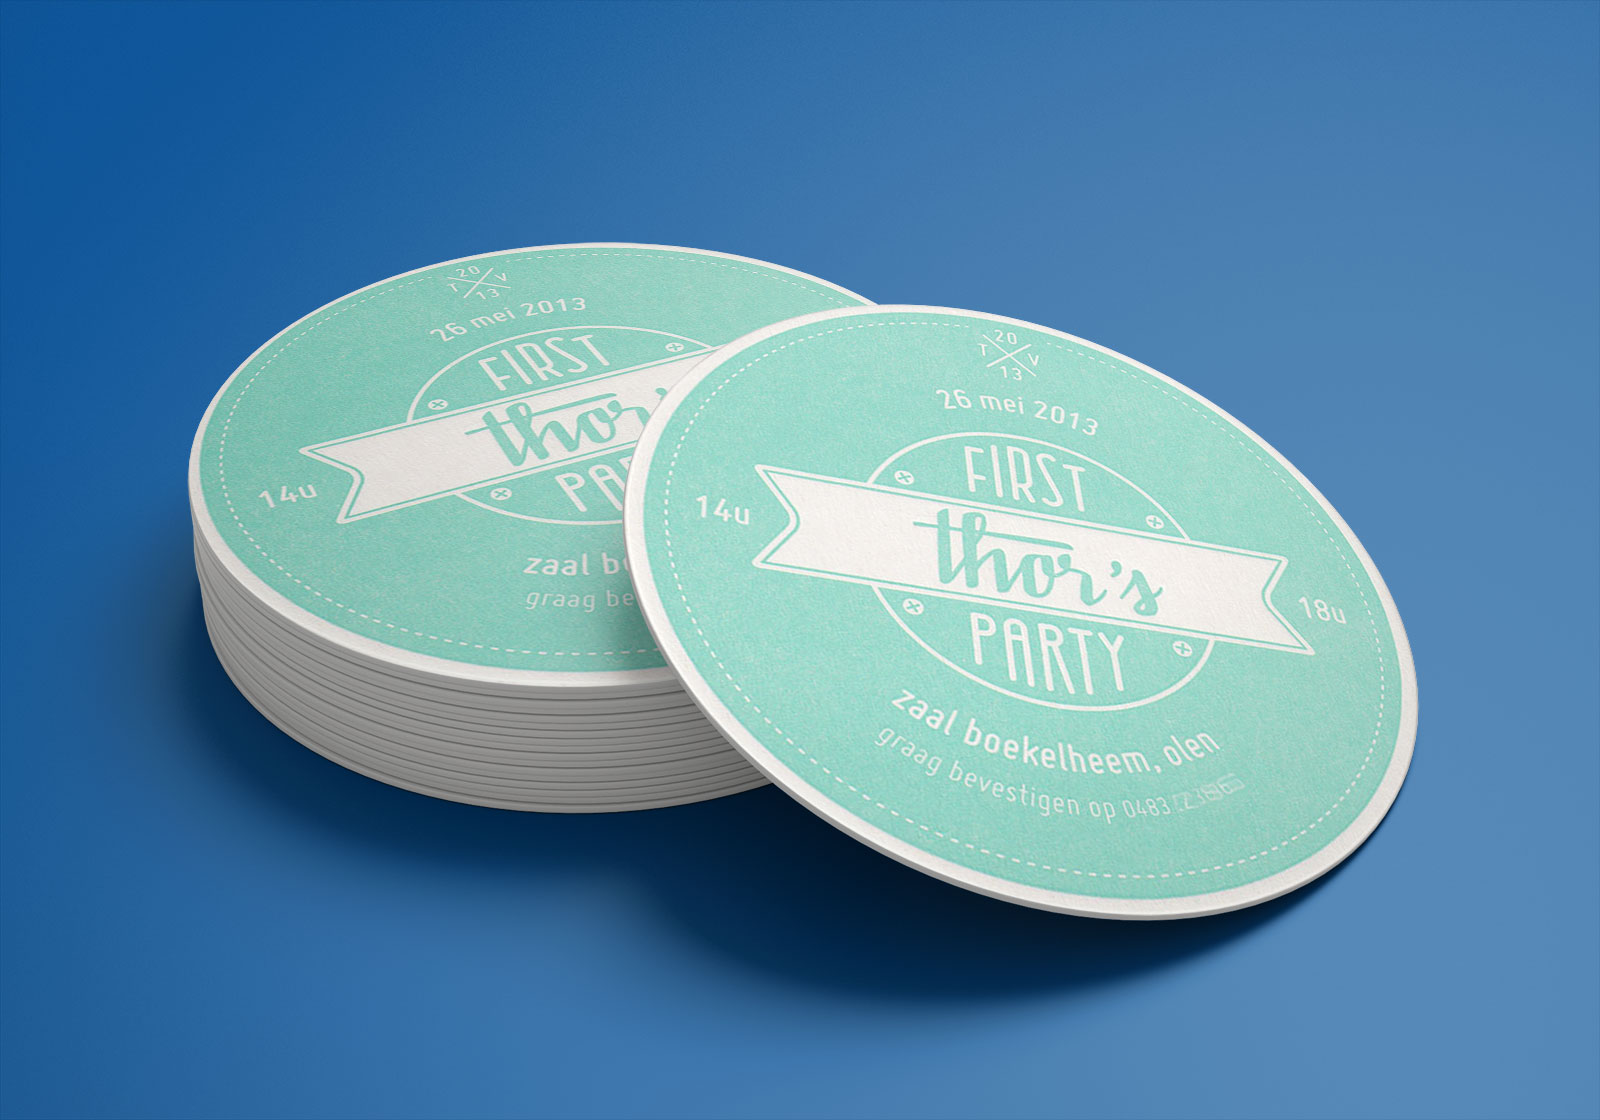 Free-Round-Drink-Beverages-Coaster-Mockup-PSD